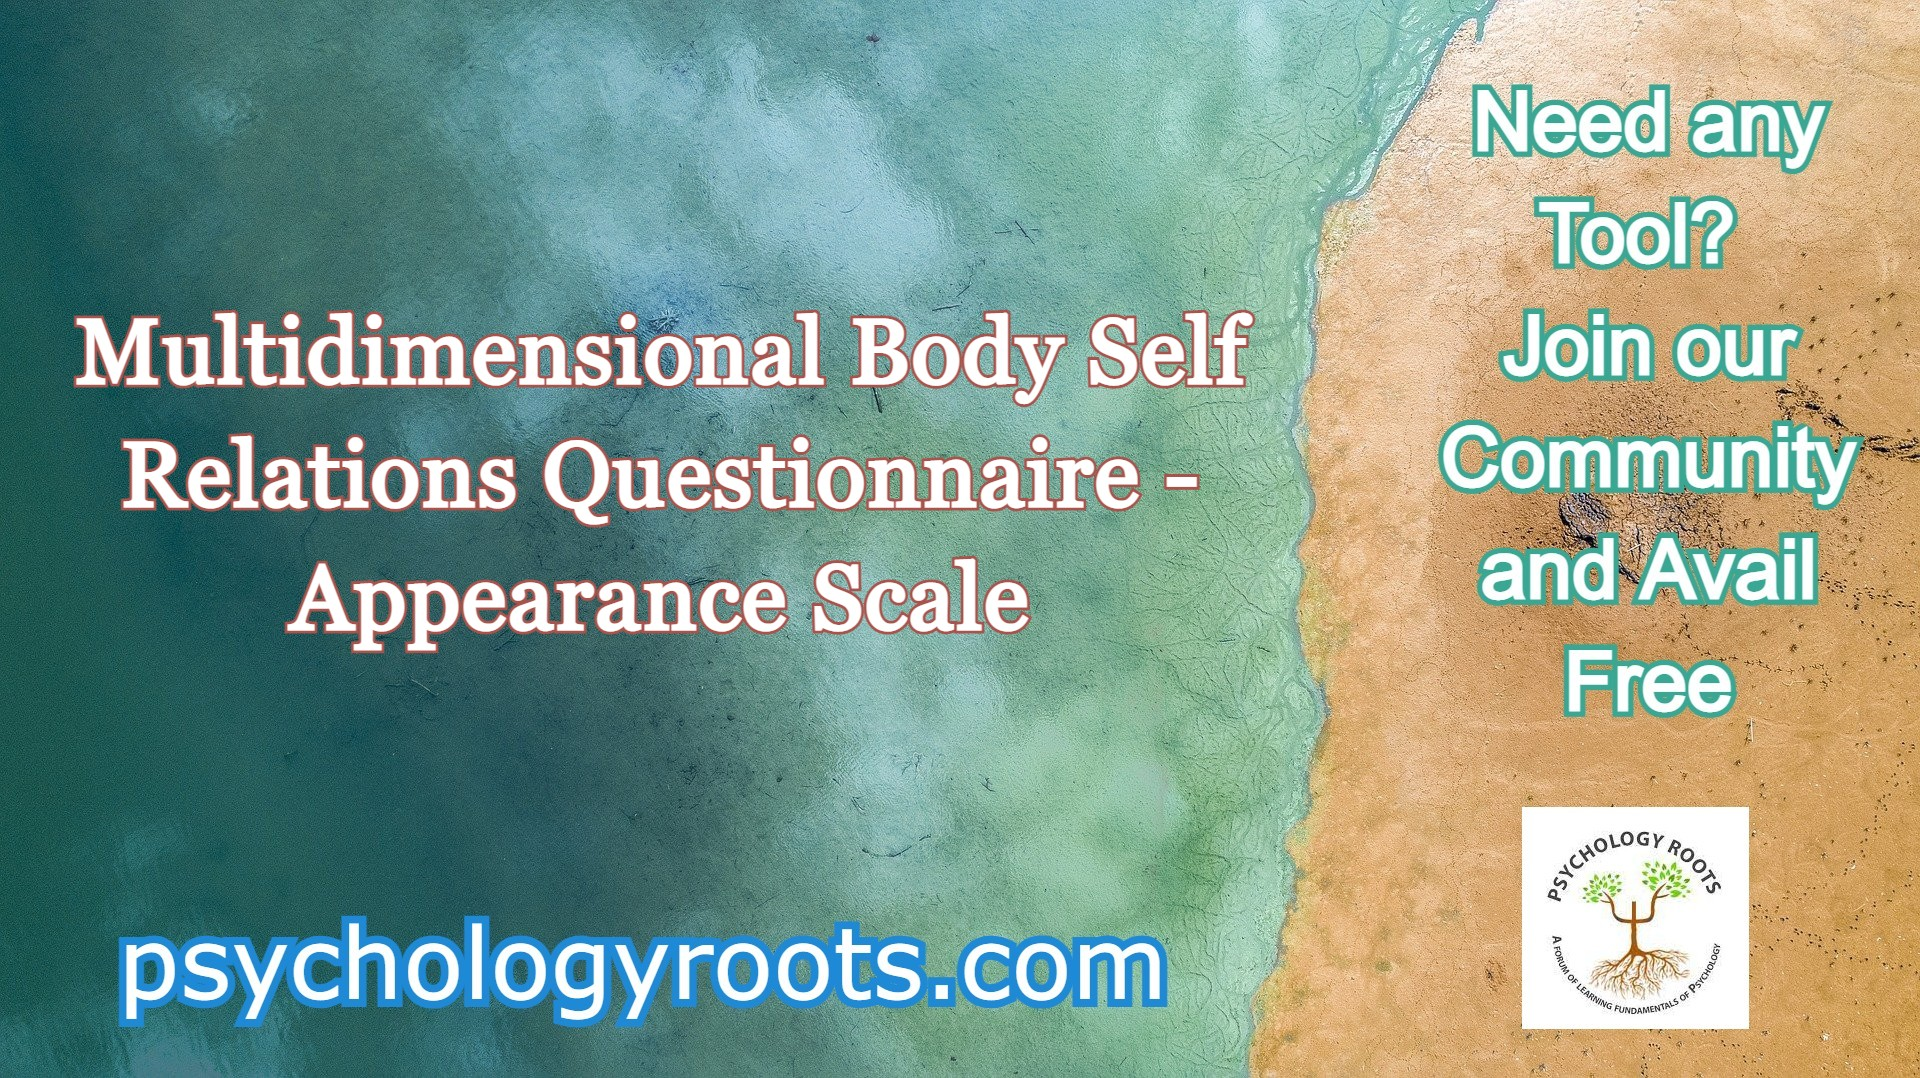 Multidimensional Body Self Relations Questionnaire - Appearance Scale